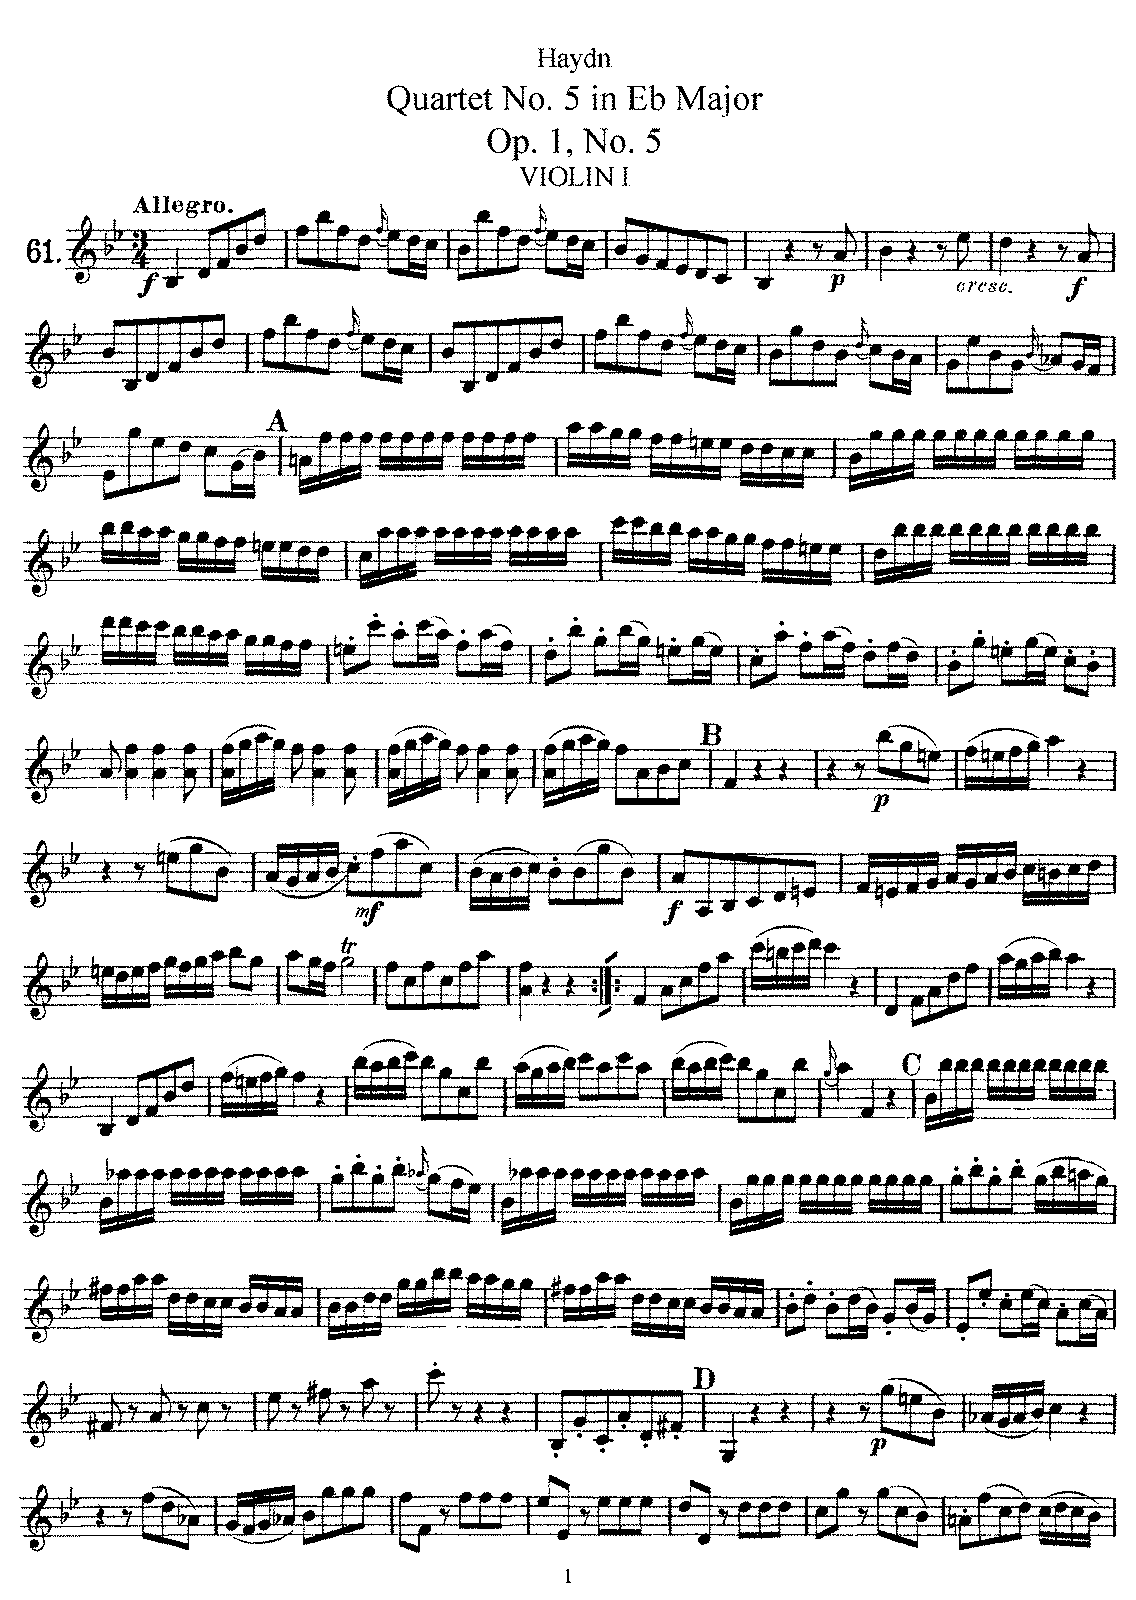 PMLP143602-Haydn - String Quartet No5 Op1 No5 in Bb Major Violin1.pdf